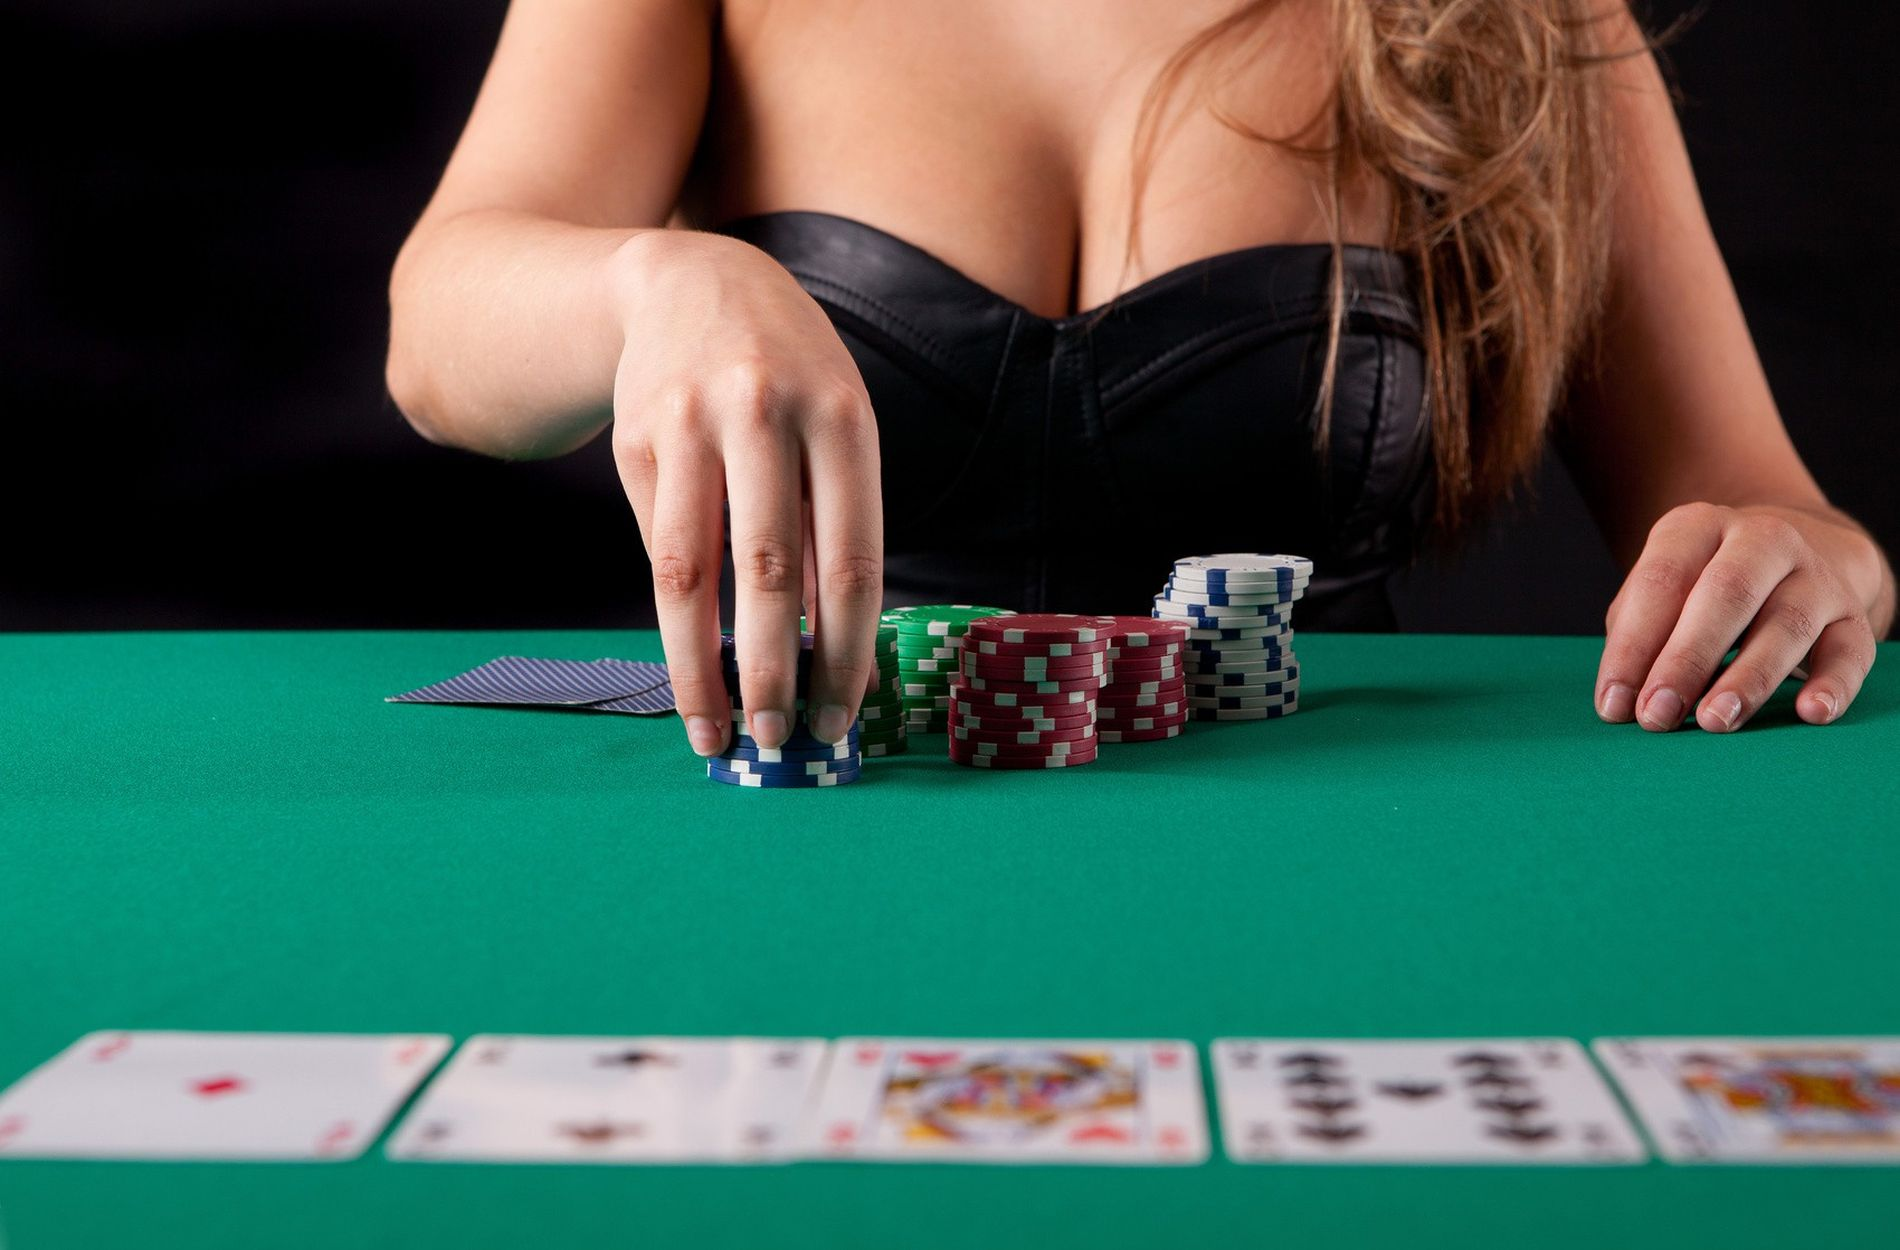 What May Casino Do To Make You Change?